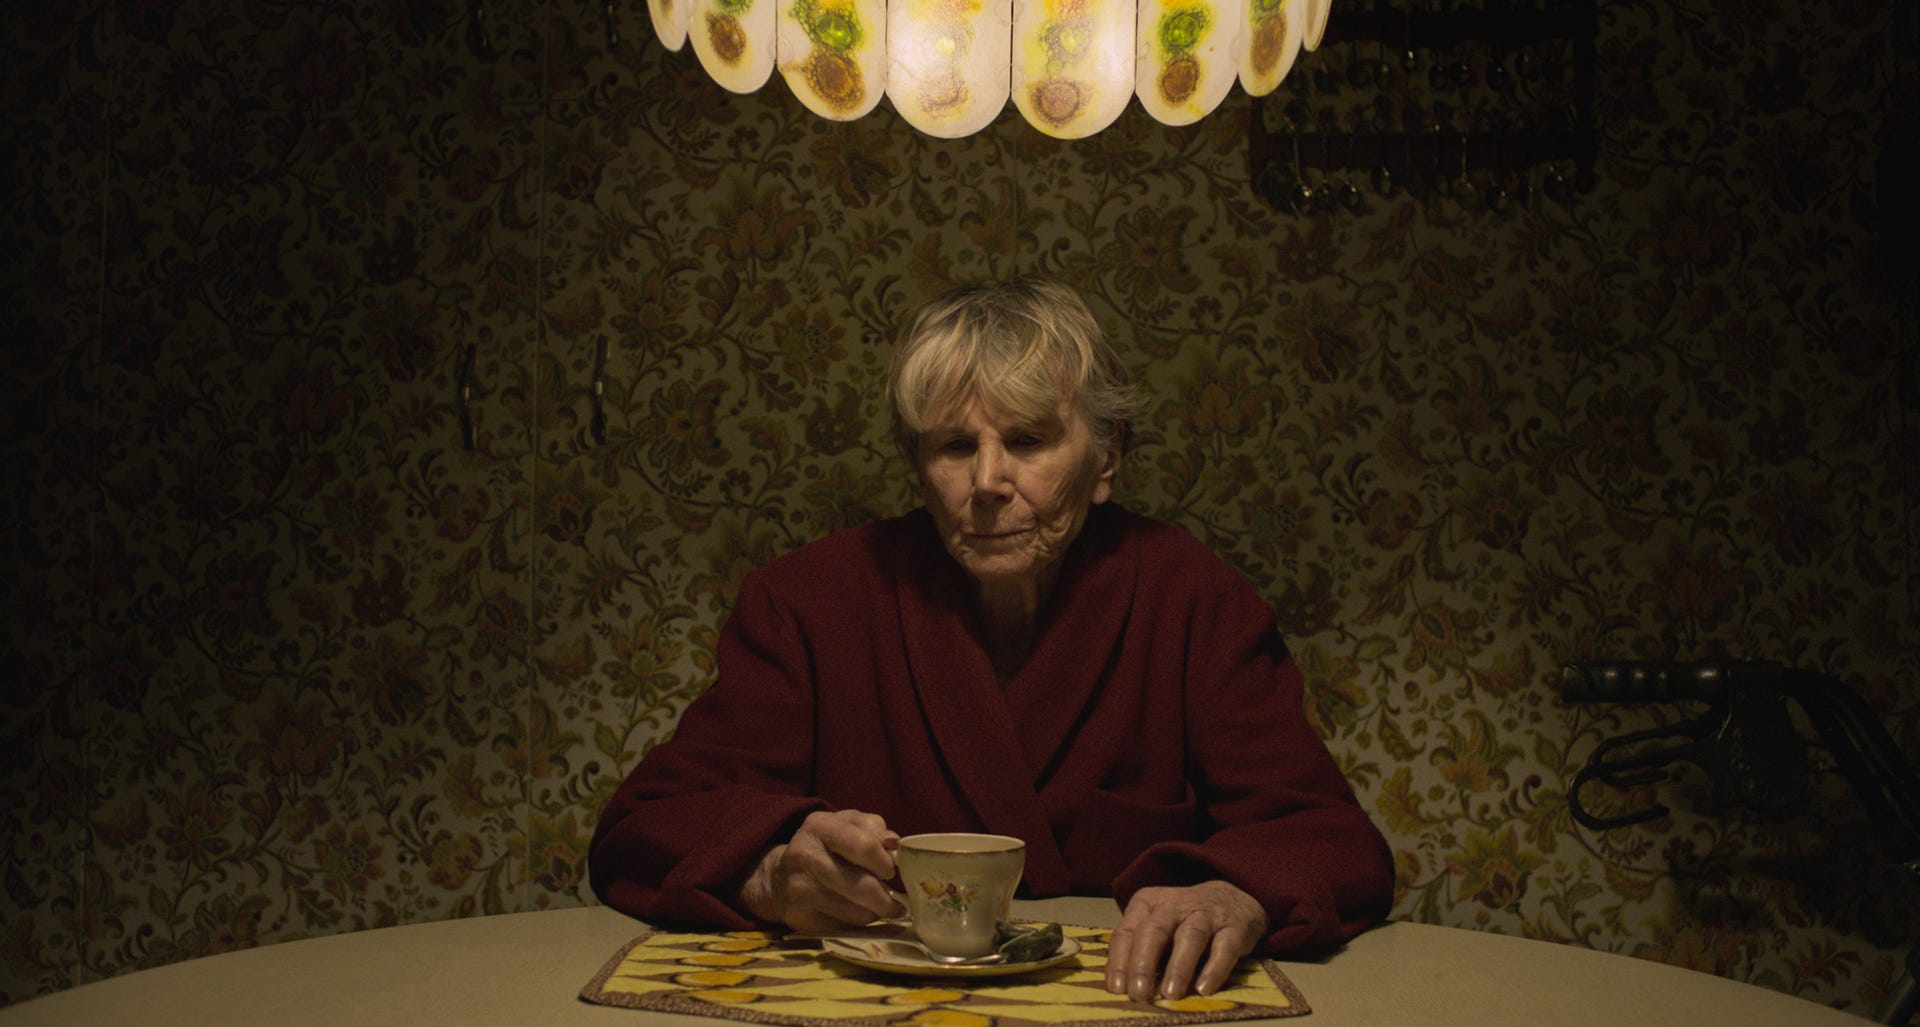 """An aging woman forms an unlikely friendship in the short """"Marguerite,"""" part of the Oscar Nominated Shorts program at the Landmark Downer Theatre."""